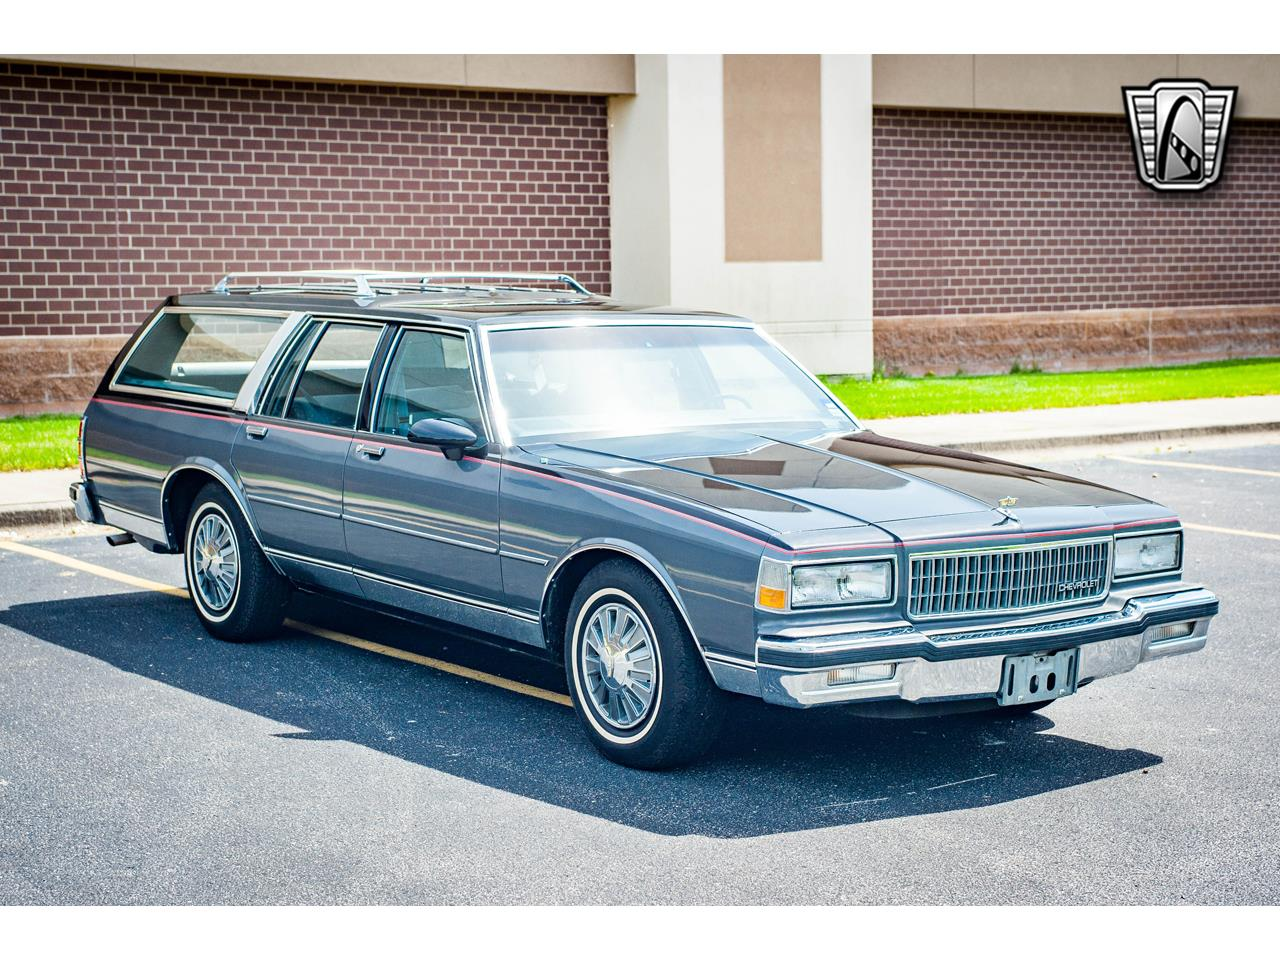 Large Picture of '89 Caprice - $17,995.00 Offered by Gateway Classic Cars - St. Louis - QB9K